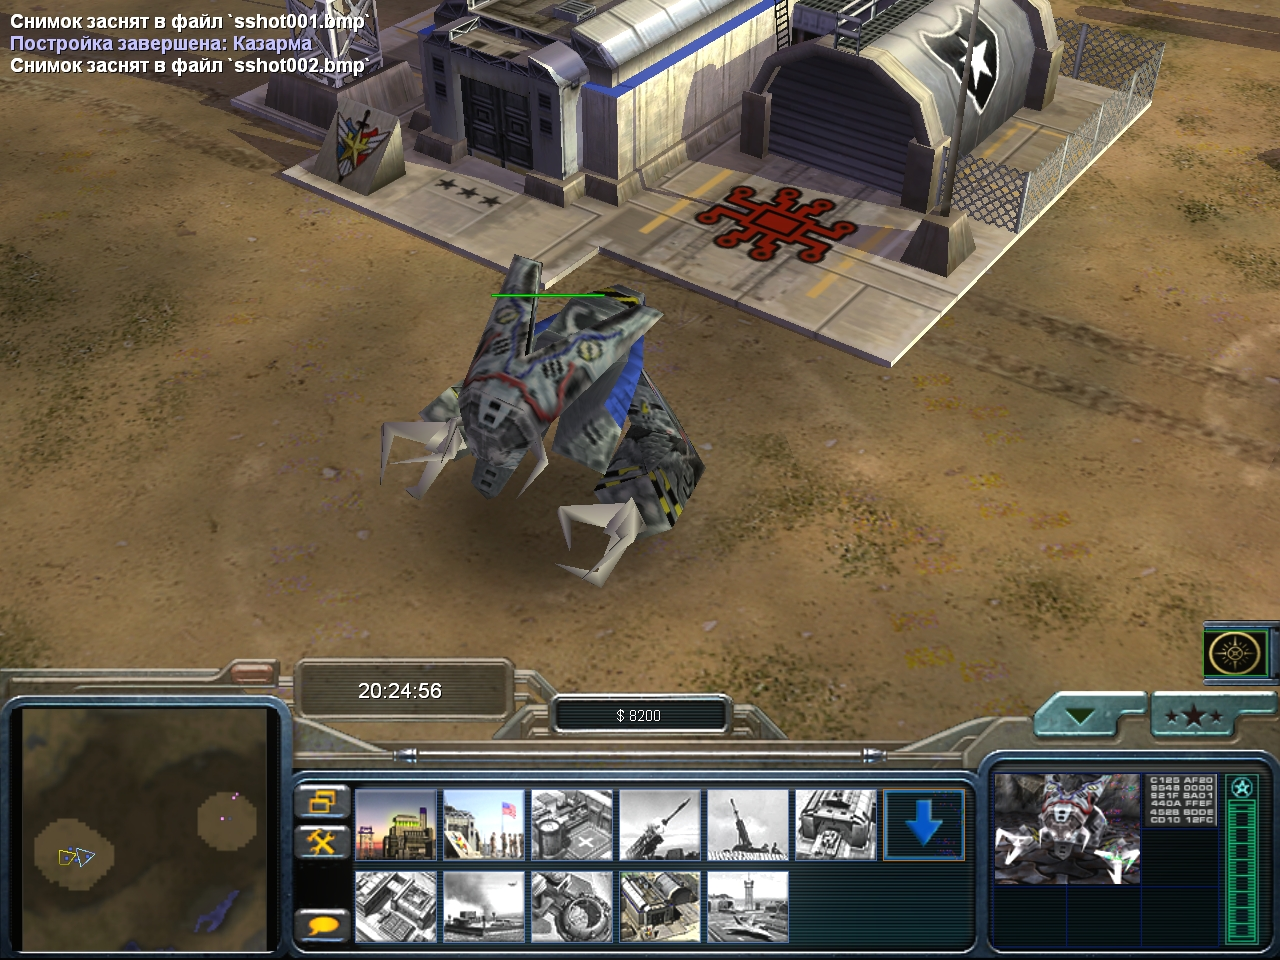 command and conquer generals 2 free download full game torrent